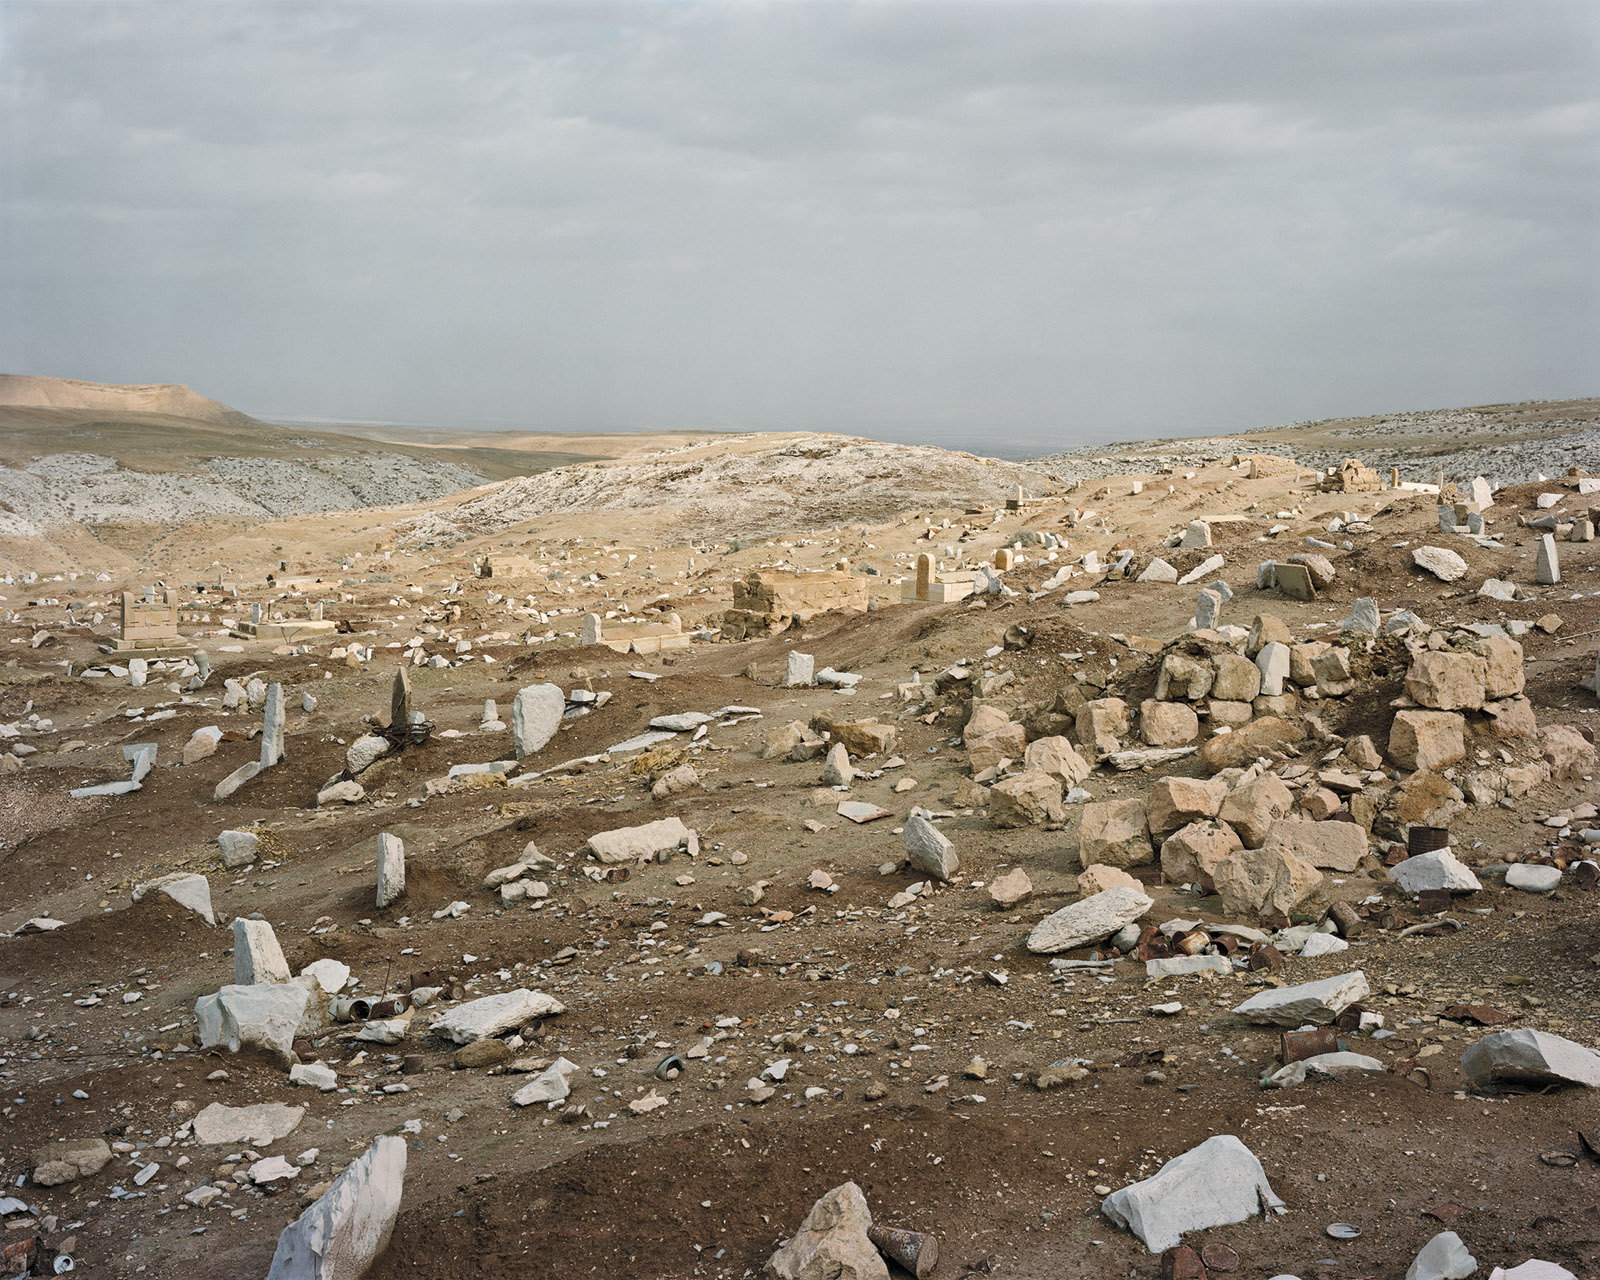 Nabi Musa, West Bank, January 19, 2010; photograph by Stephen Shore from the exhibition Stephen Shore, on view at the Museum of Modern Art, New York City, through May 28, 2018. The catalog is by Quentin Bajac, with contributions by David Campany, Kristen Gaylord, and Martino Stierli. It is published by MoMA.